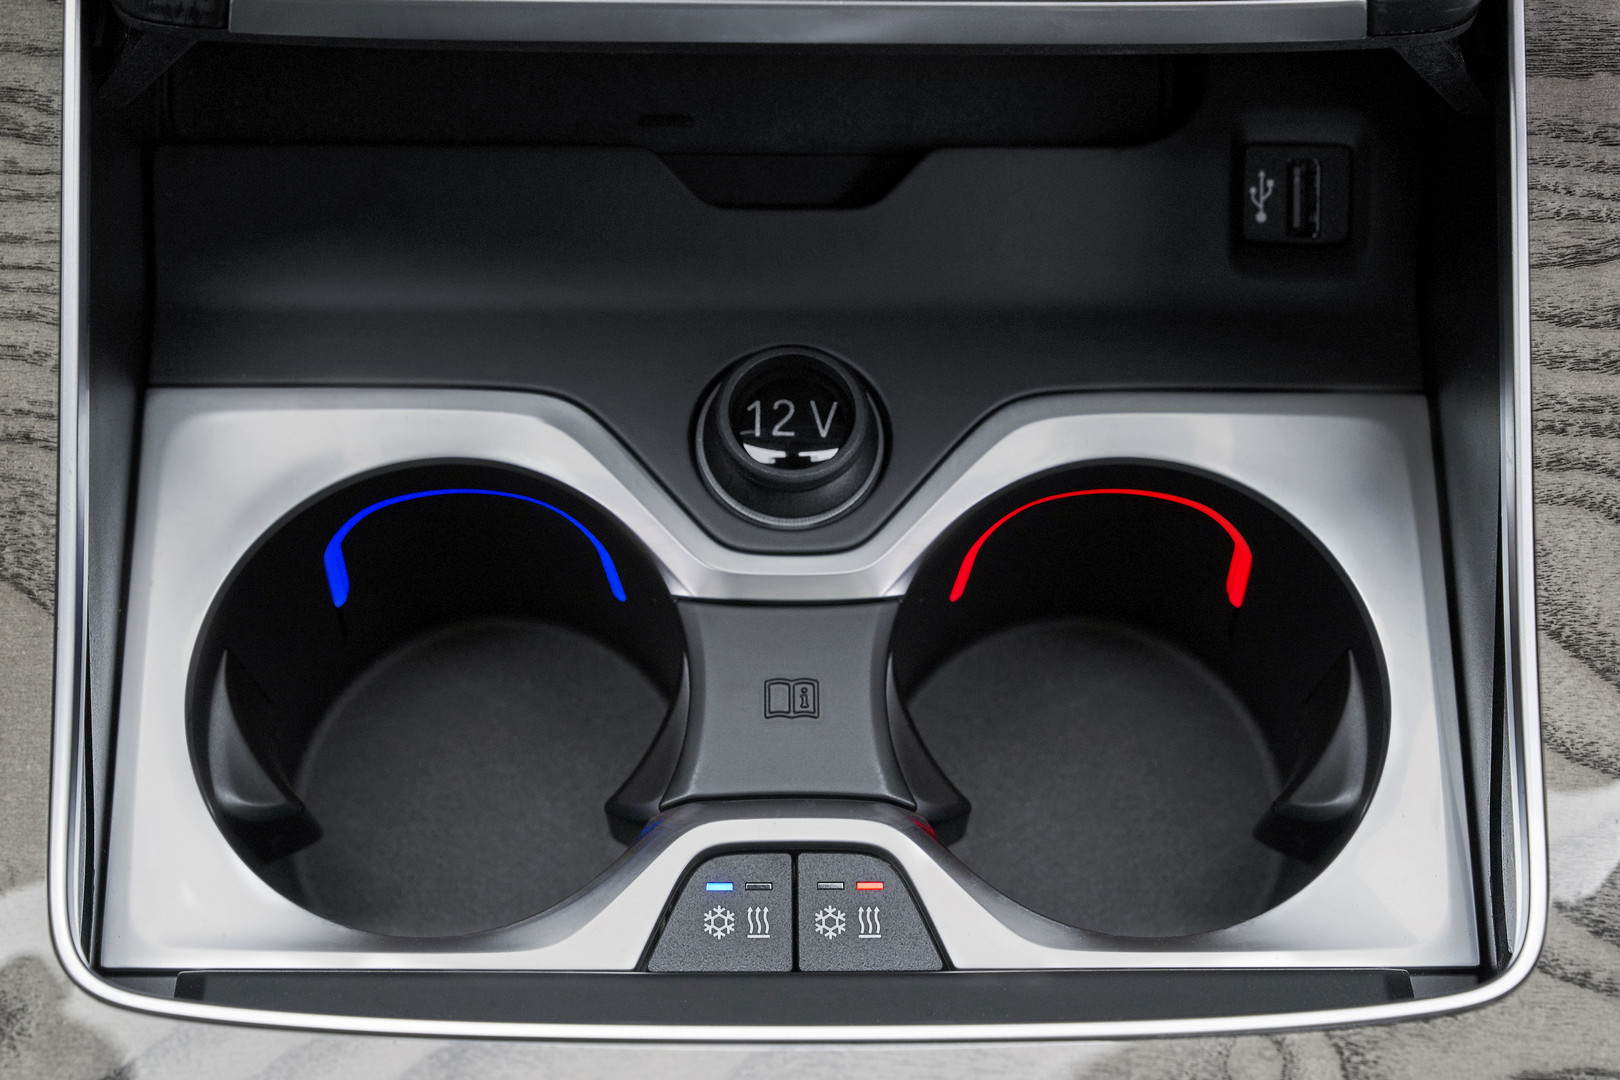 2019 BMW X7 Heated and Cooling Cup Holders